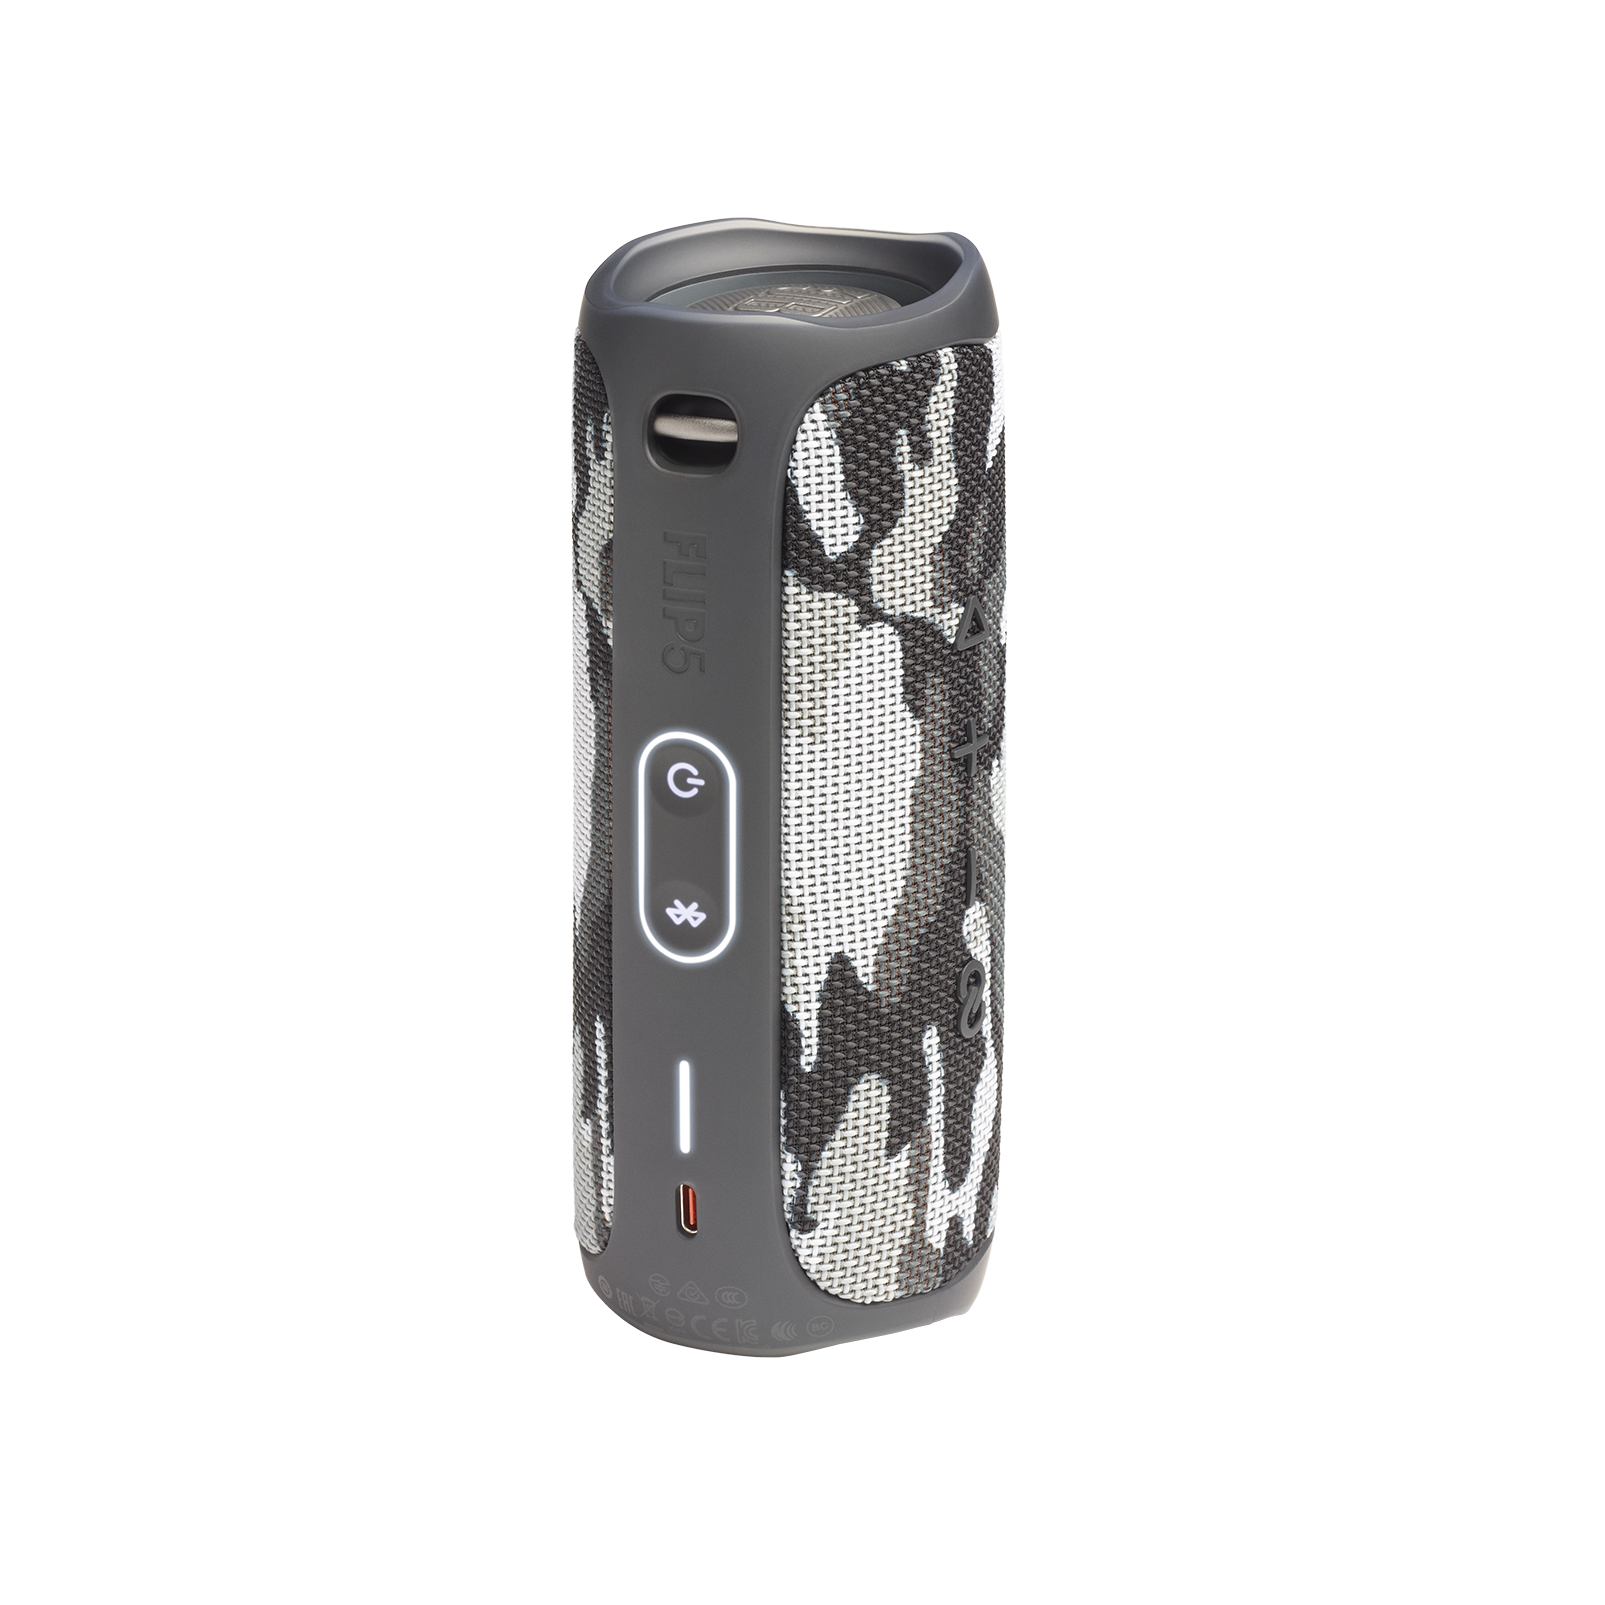 JBL FLIP 5 - Black Camo - Portable Waterproof Speaker - Back